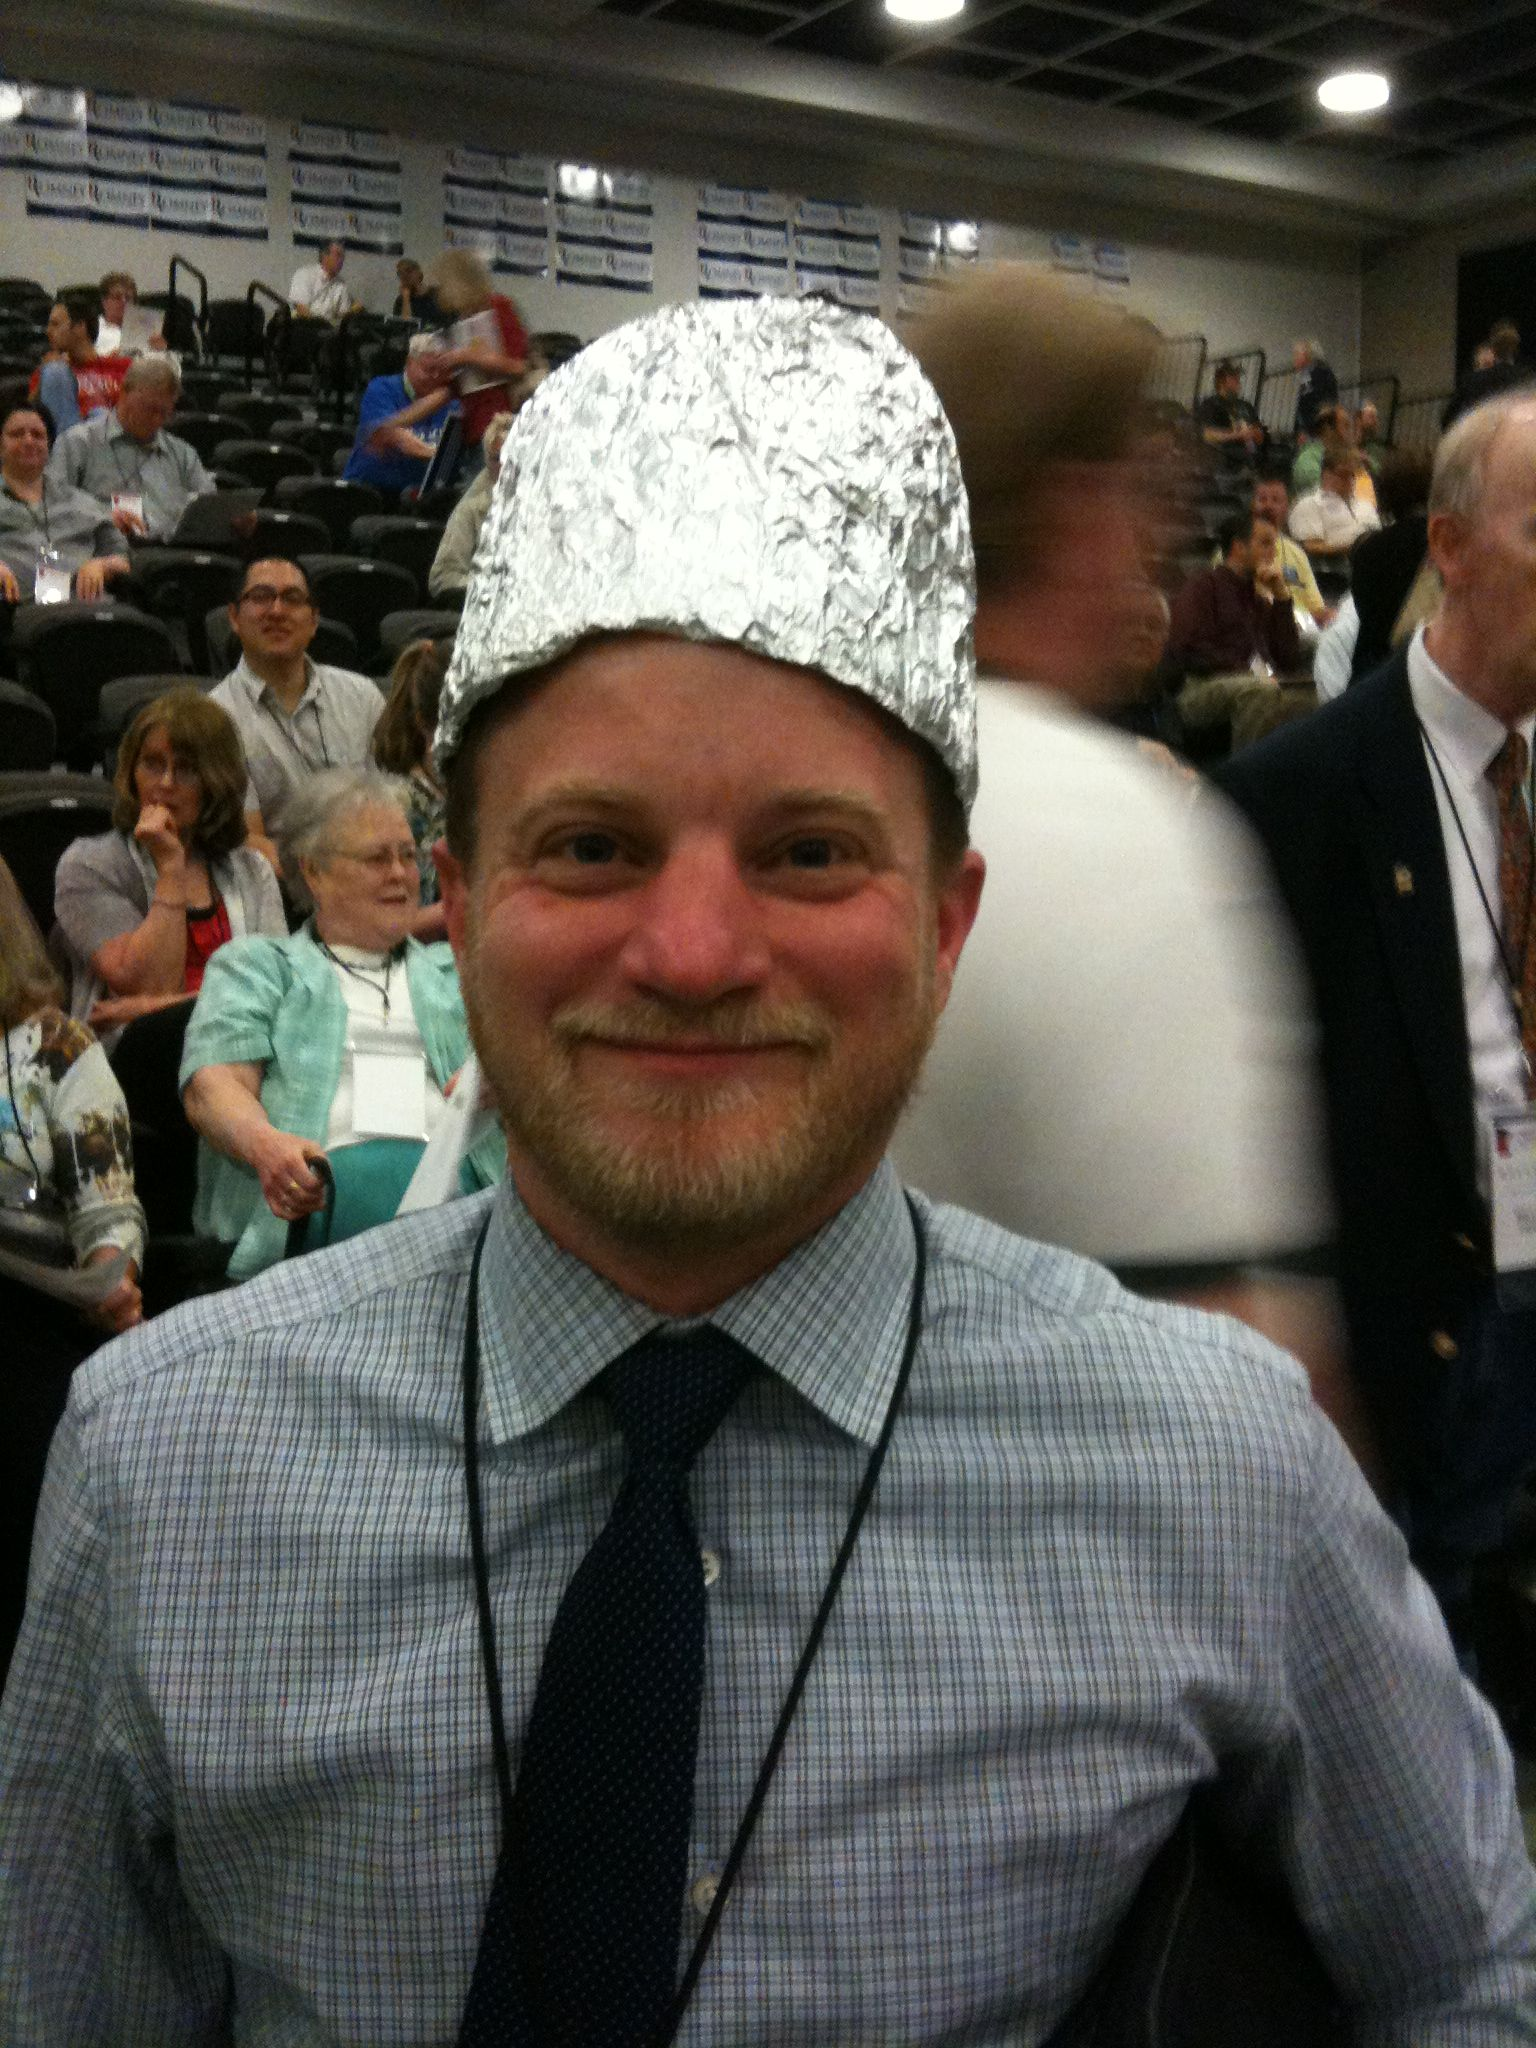 dc18186f629 tin foil hat is an easy and awesome costume idea